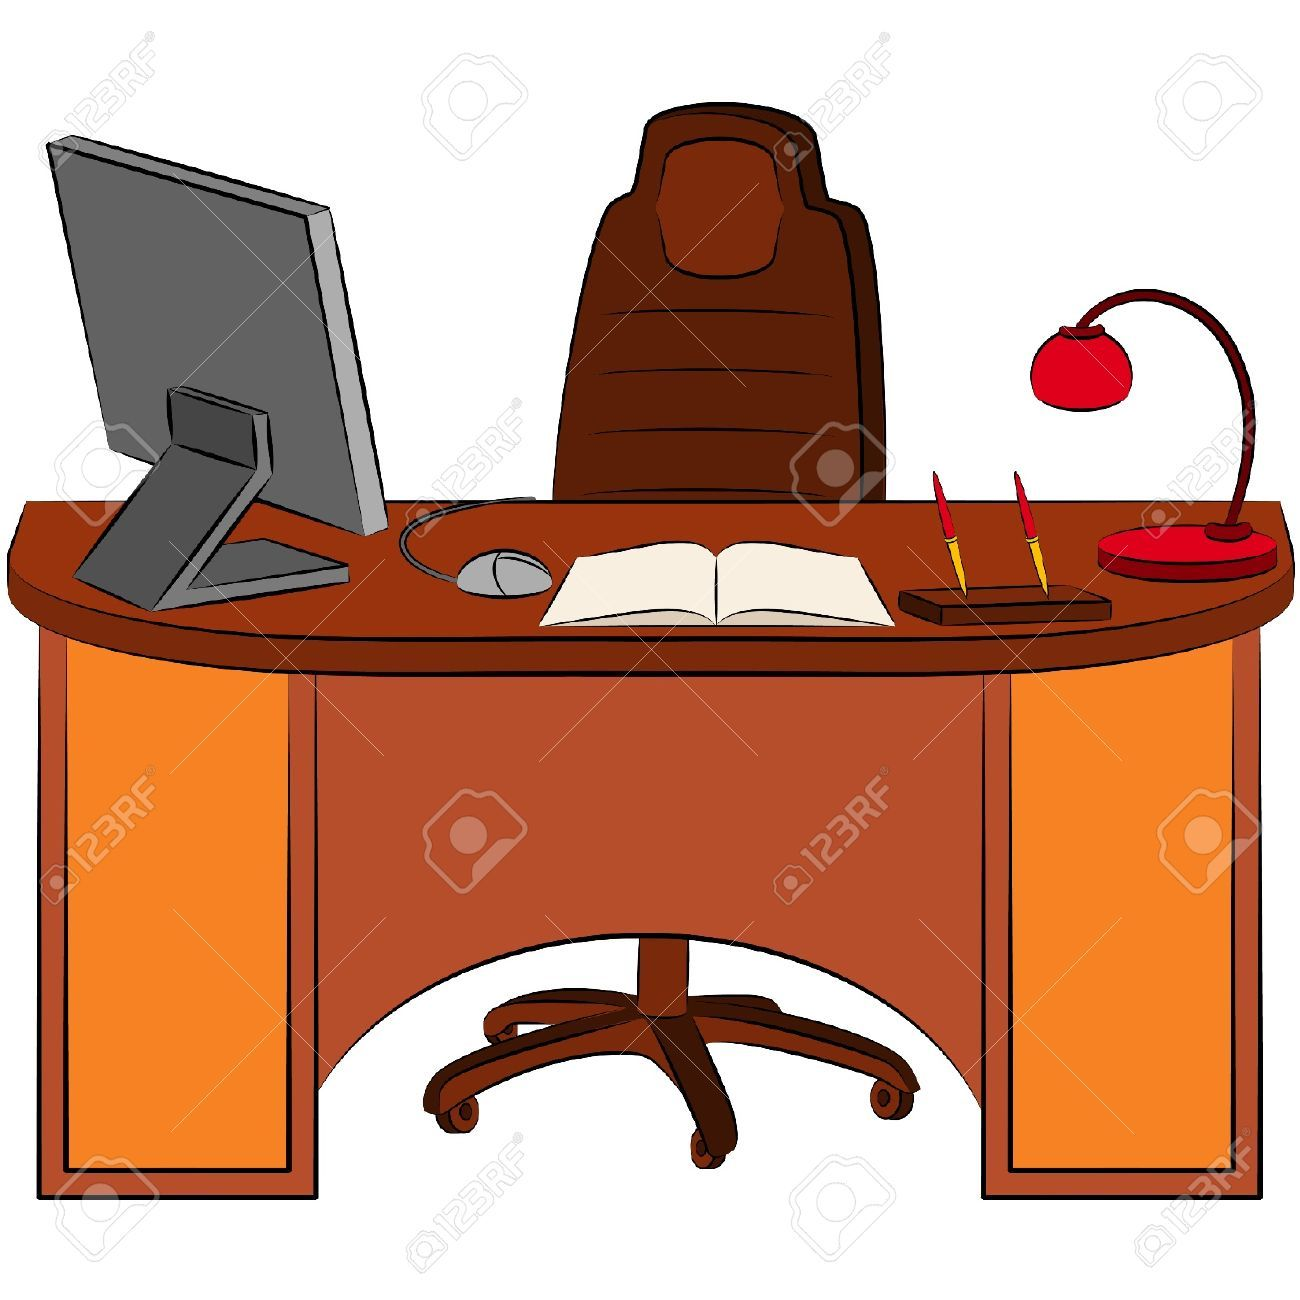 Desk clipart images svg royalty free library Office Desk Clipart | Free download best Office Desk Clipart on ... svg royalty free library